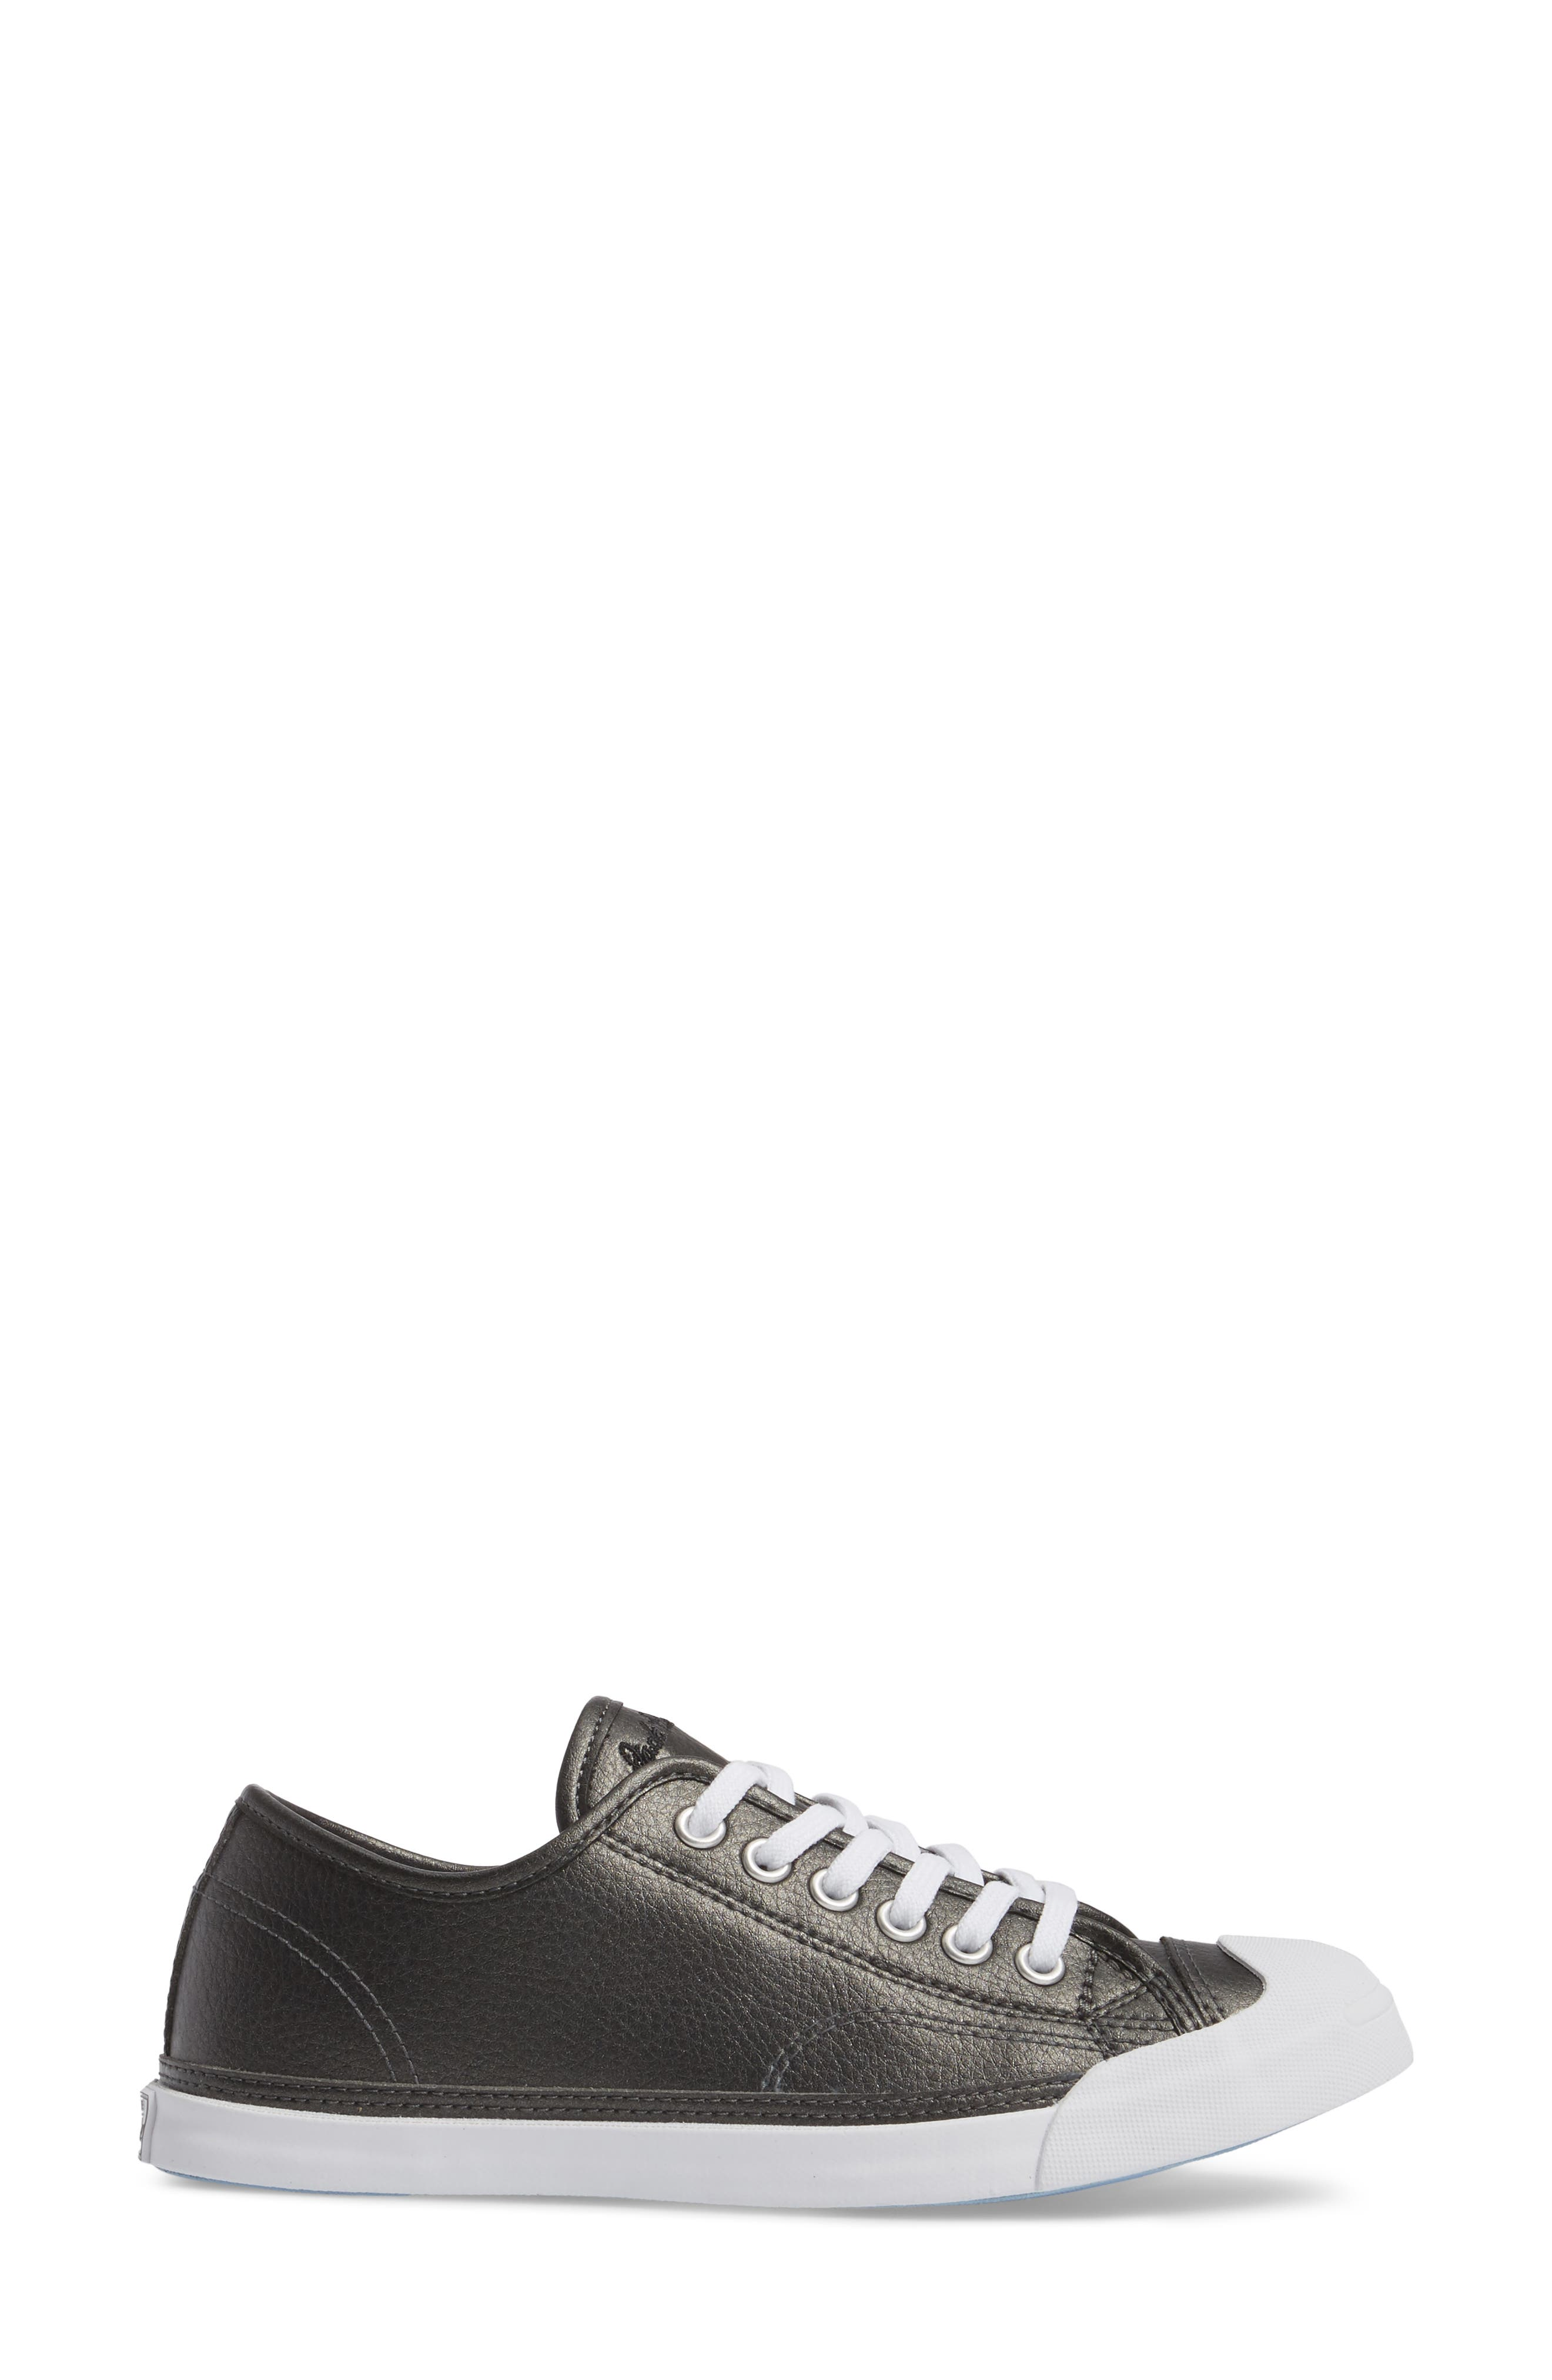 Jack Purcell Low Top Sneaker,                             Alternate thumbnail 3, color,                             001